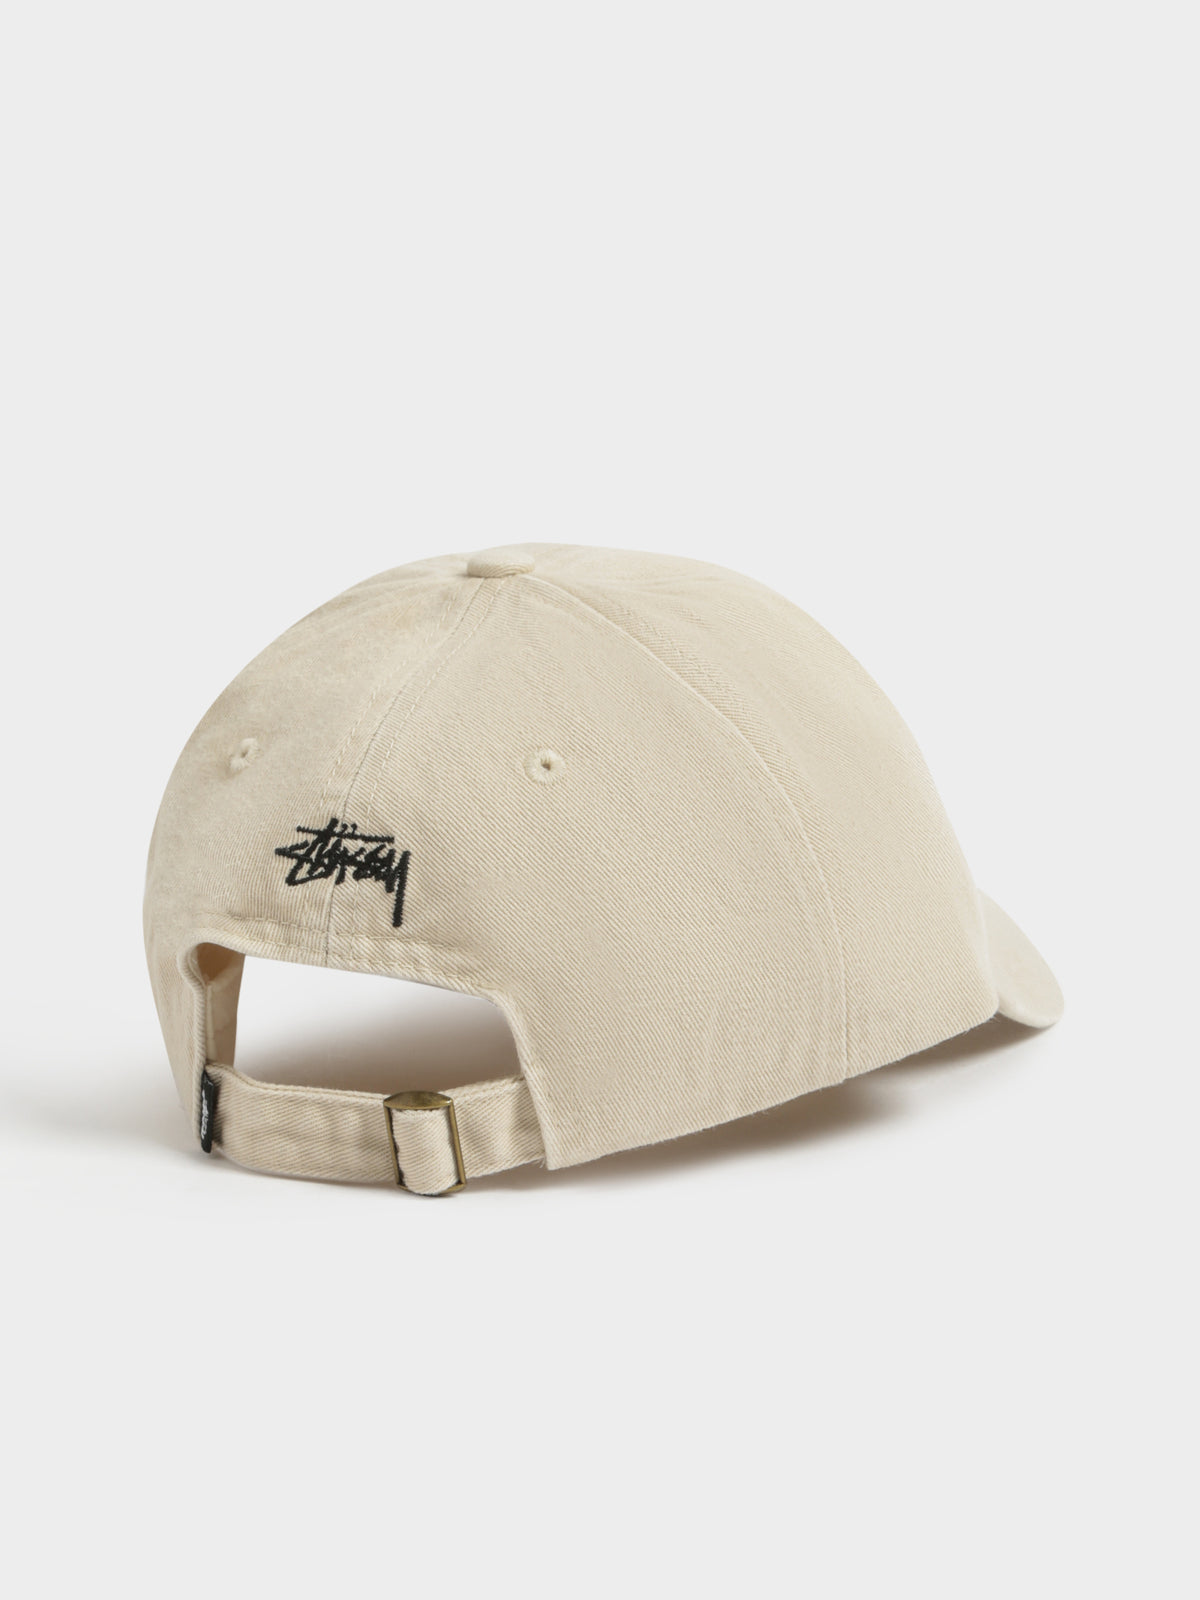 Embroidered Crown Stock Low-Pro Cap in White Sand